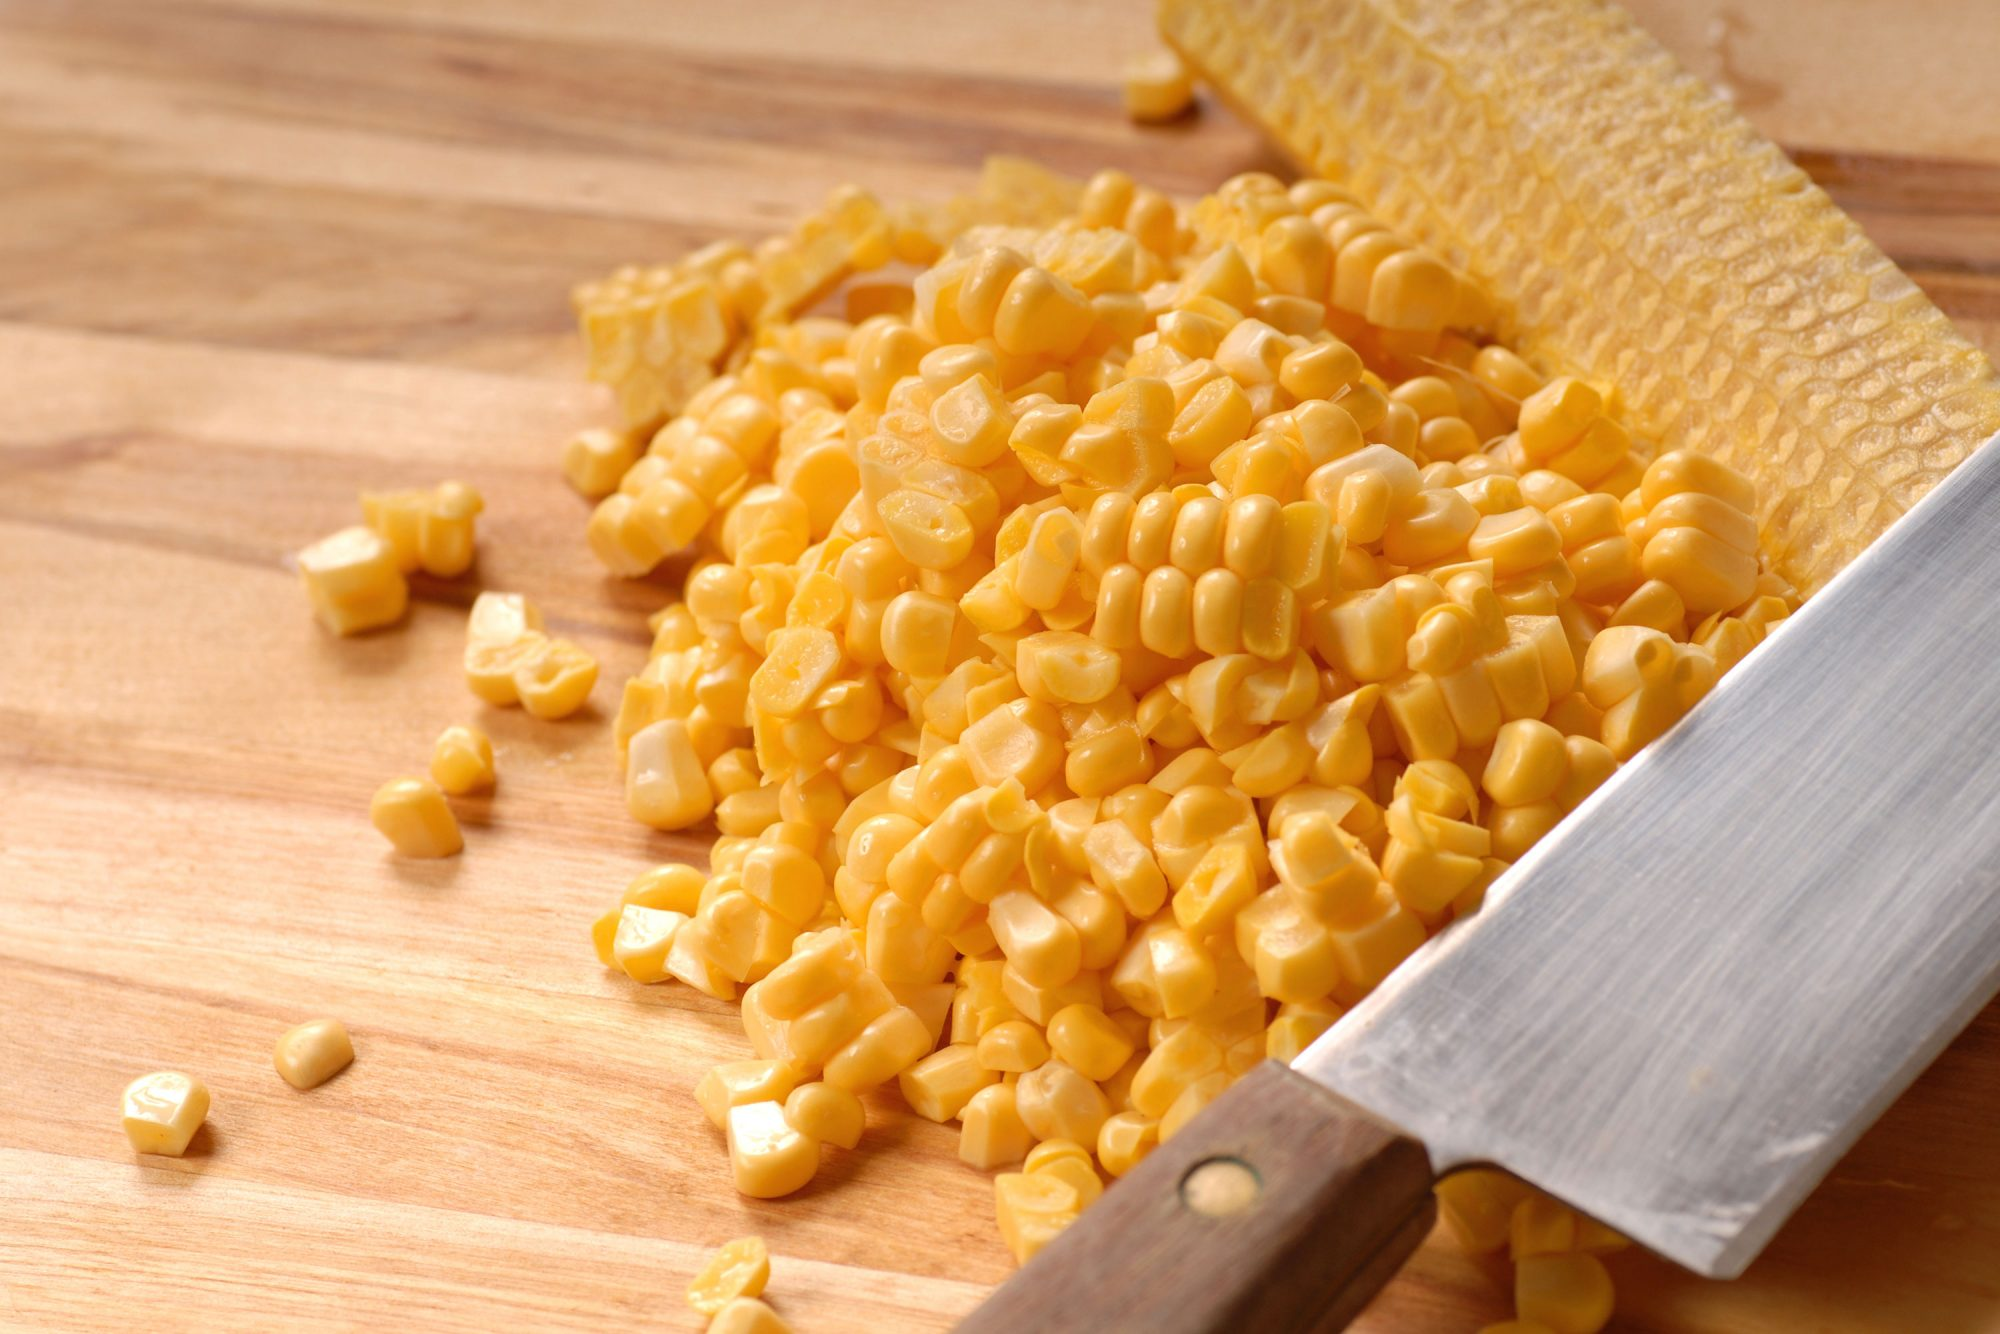 Corn removed from cob on cutting board